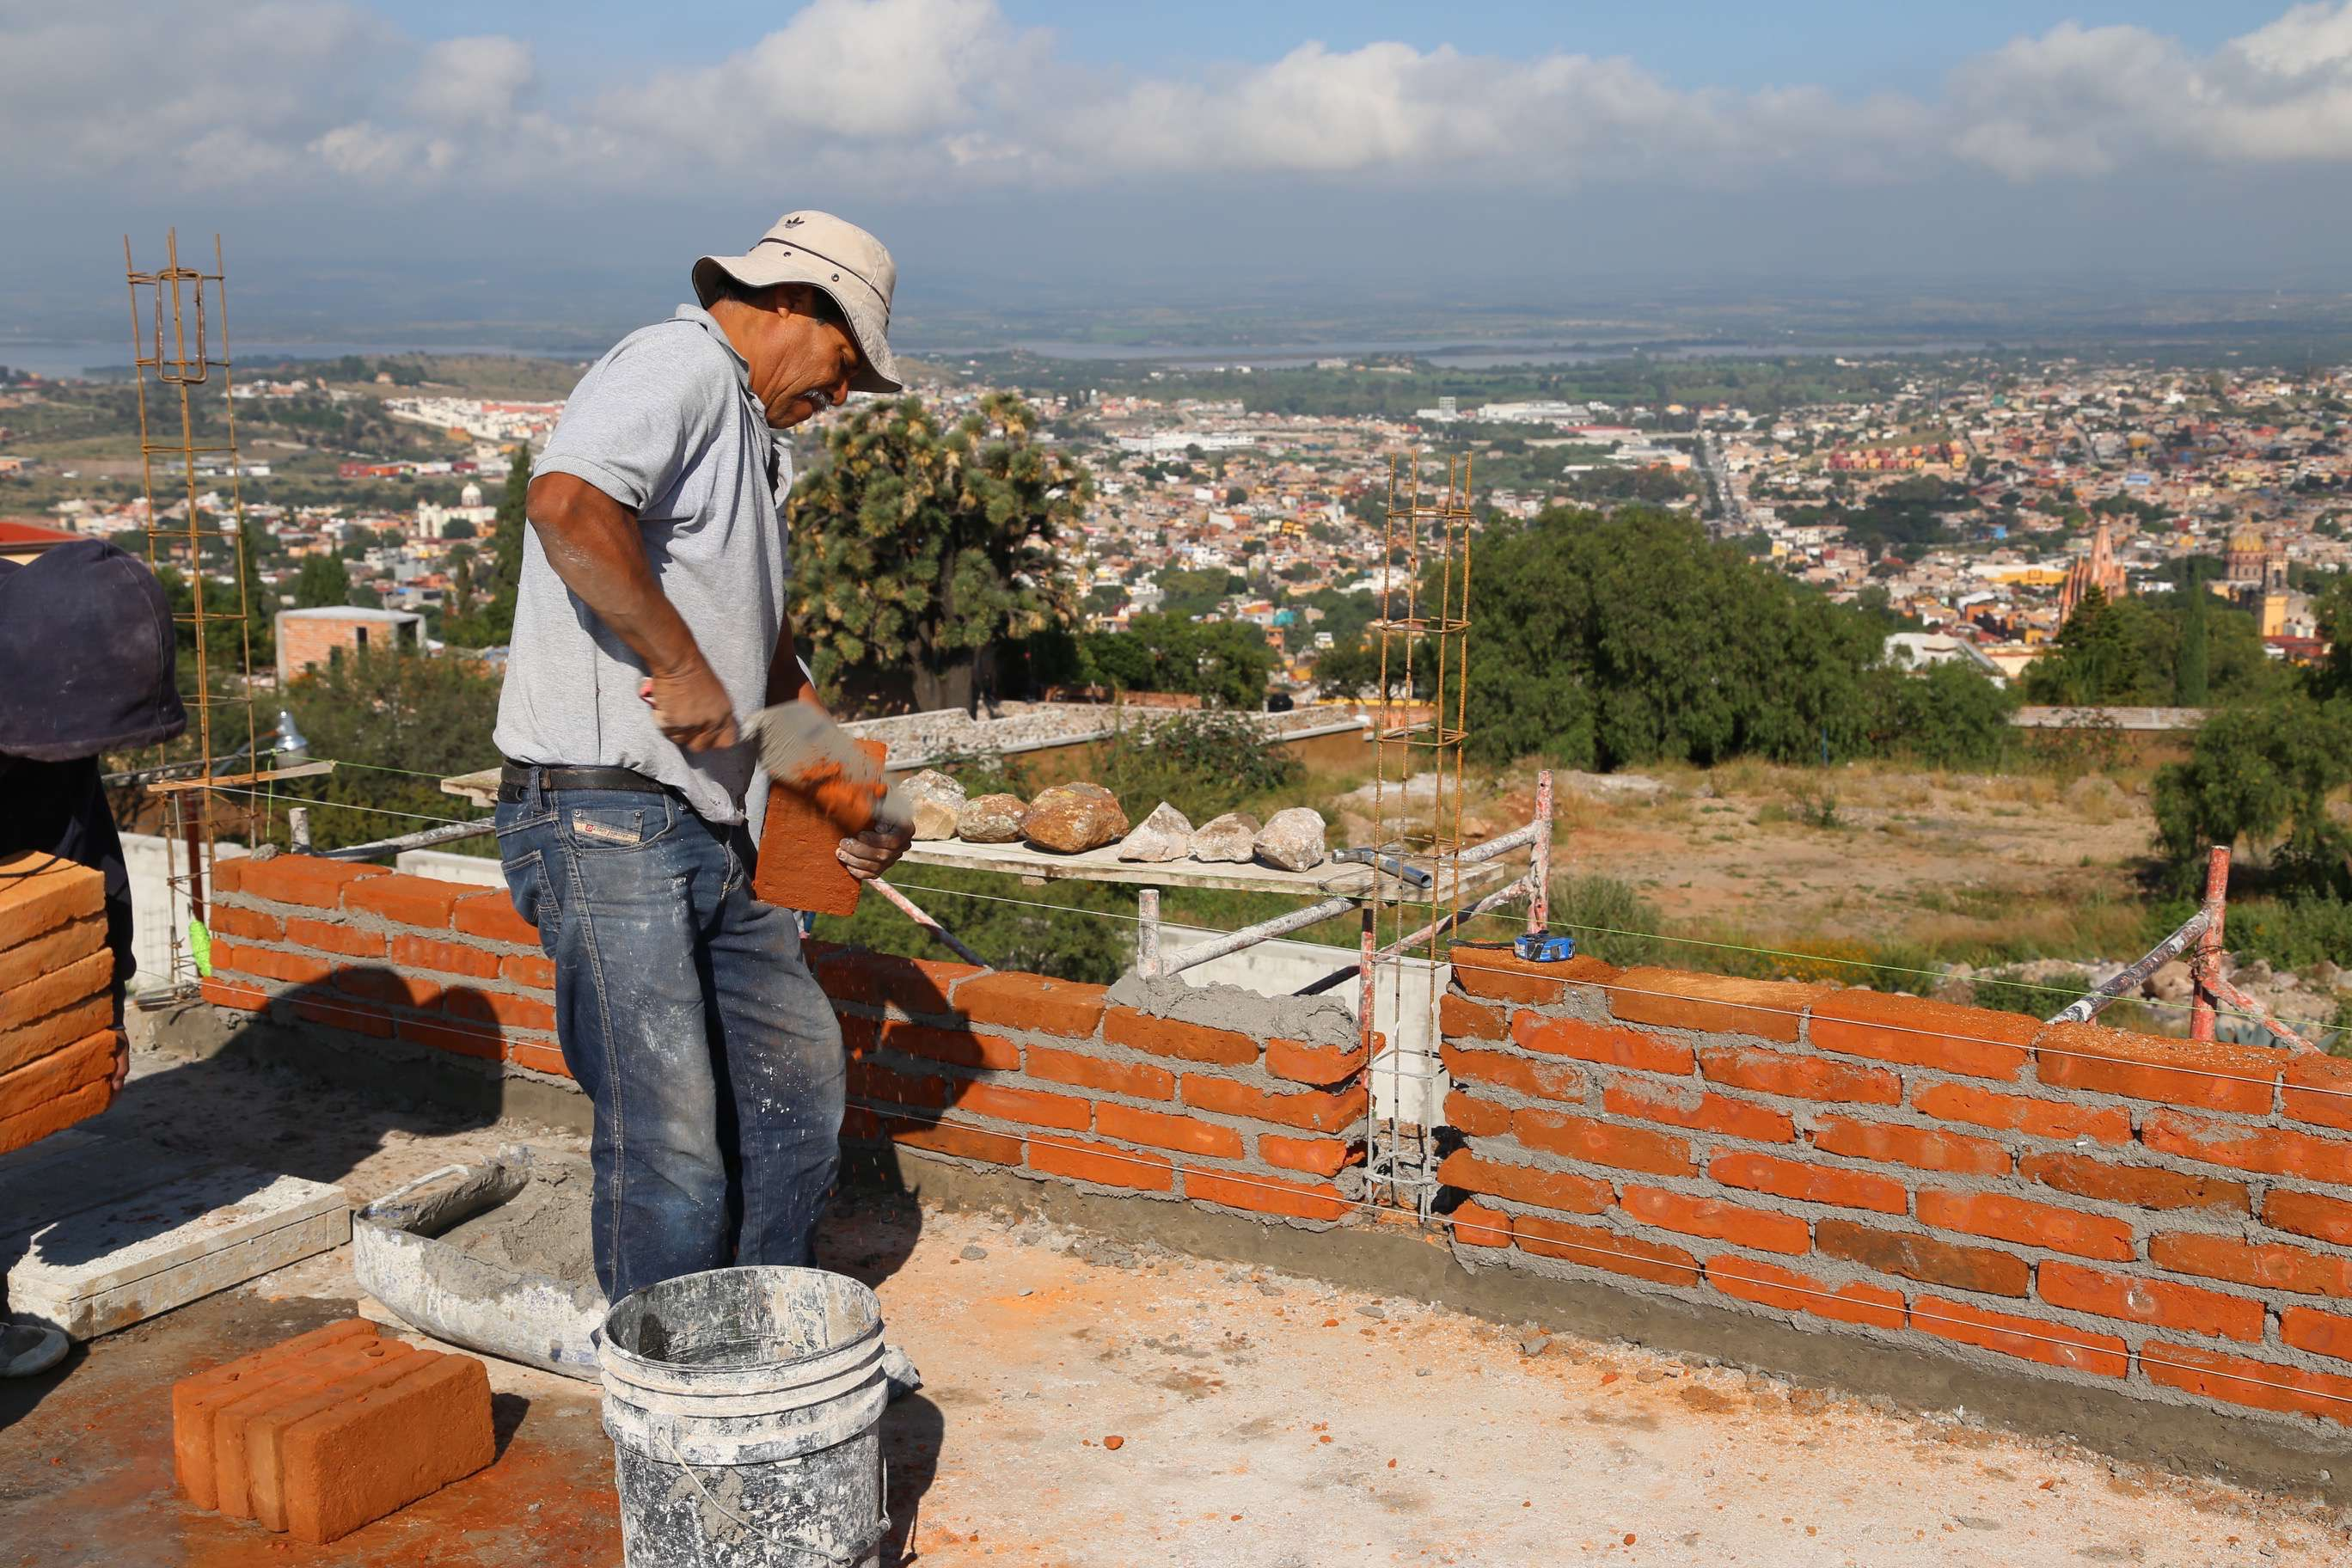 A mason deftly trims off a brick during the construction of a new home high in the hills.